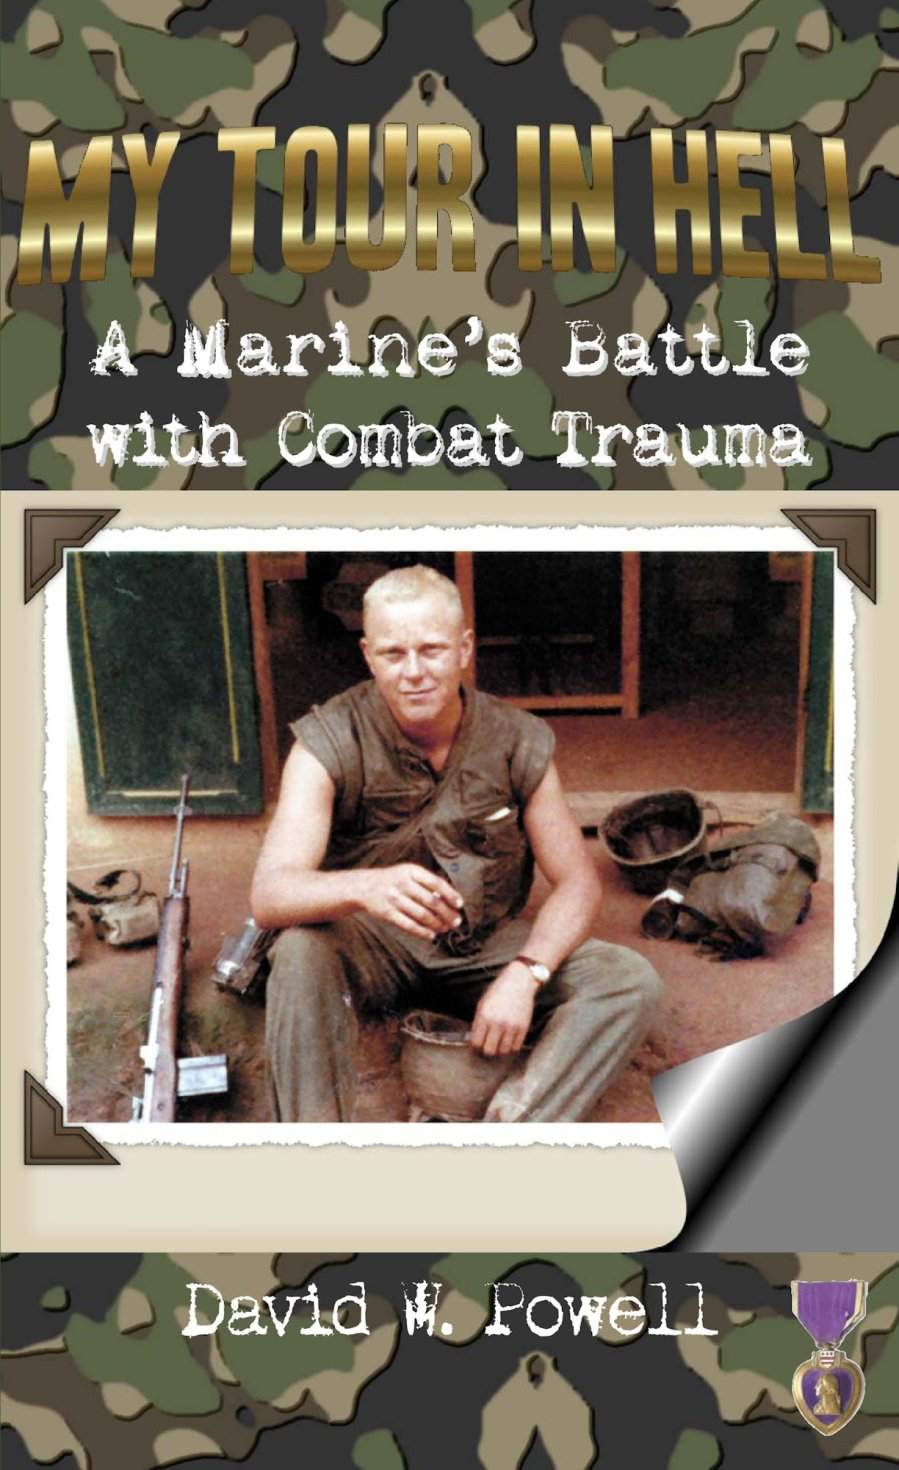 My Tour in Hell: A Marine's Battle with Combat Trauma 978-1-932690-23-1